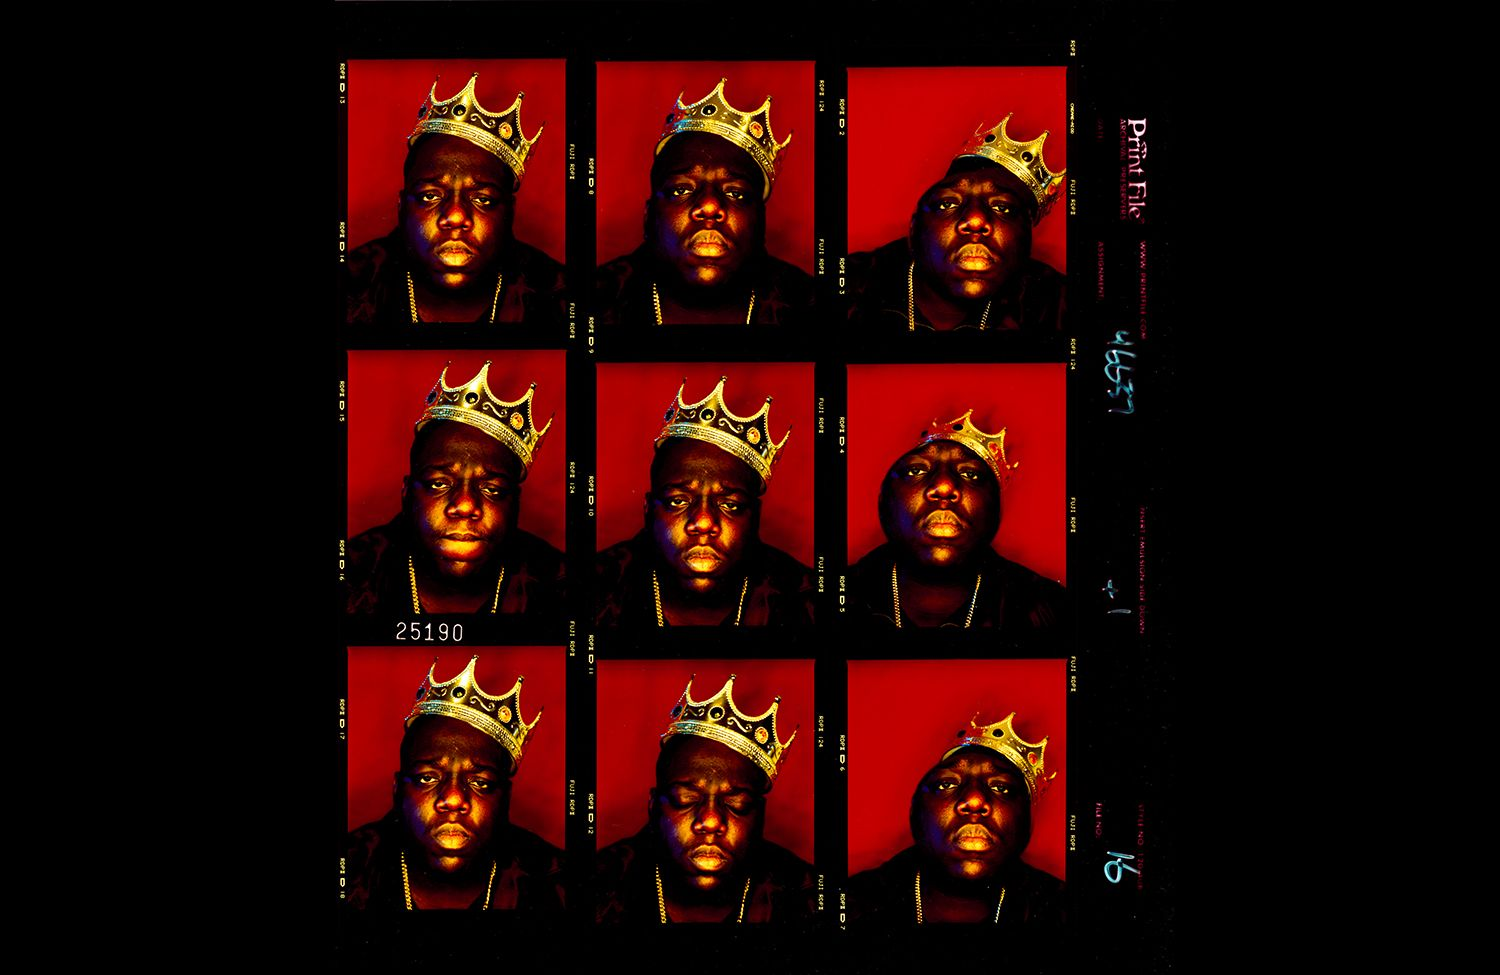 2. Biggie Smalls, King of New York contact sheet (1997). Photo by Barron Claiborne.